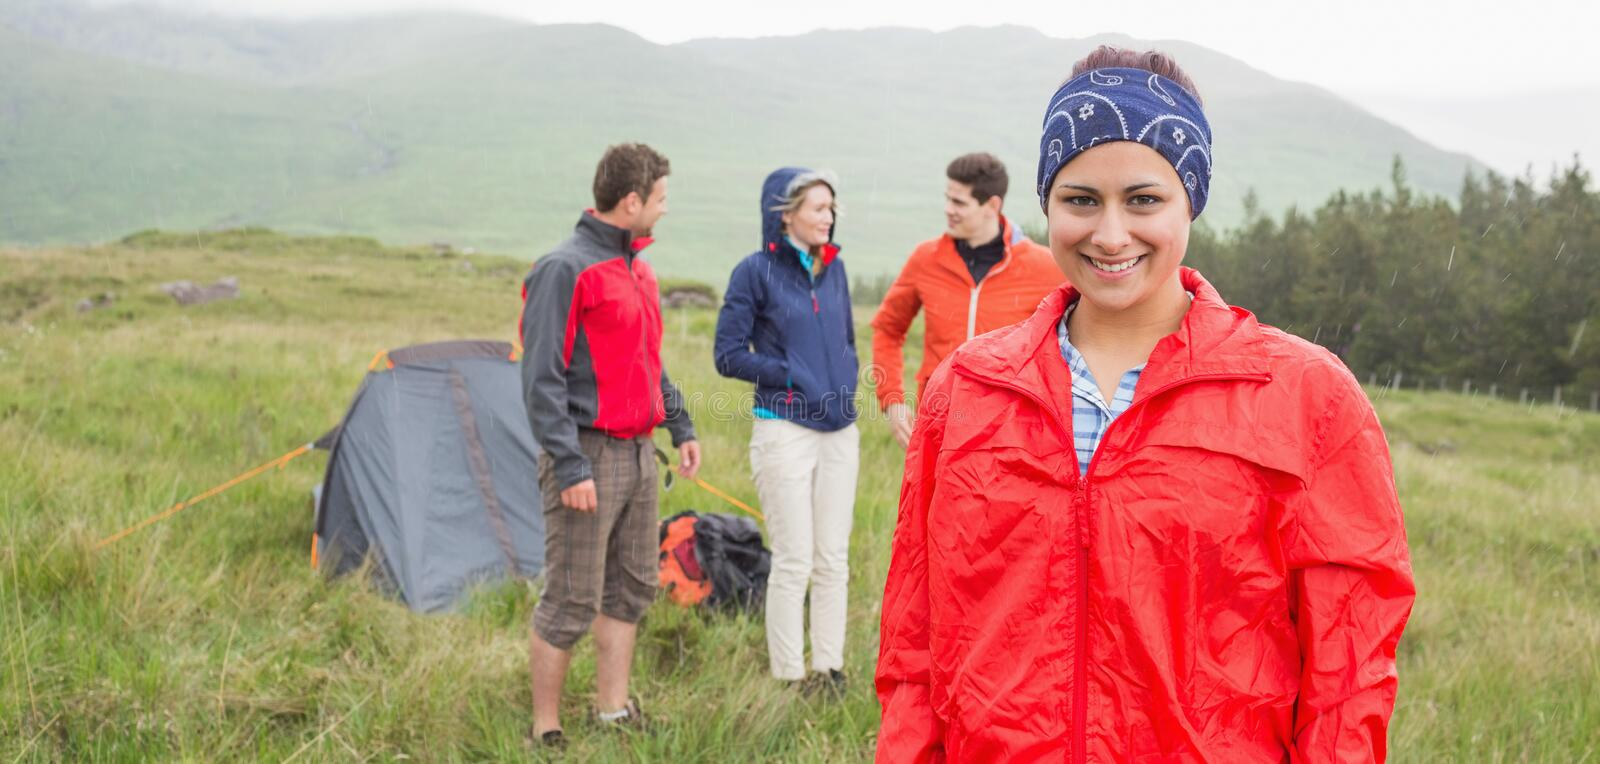 Brunette smiling at camera with friends behind her on camping trip. In the countryside royalty free stock image